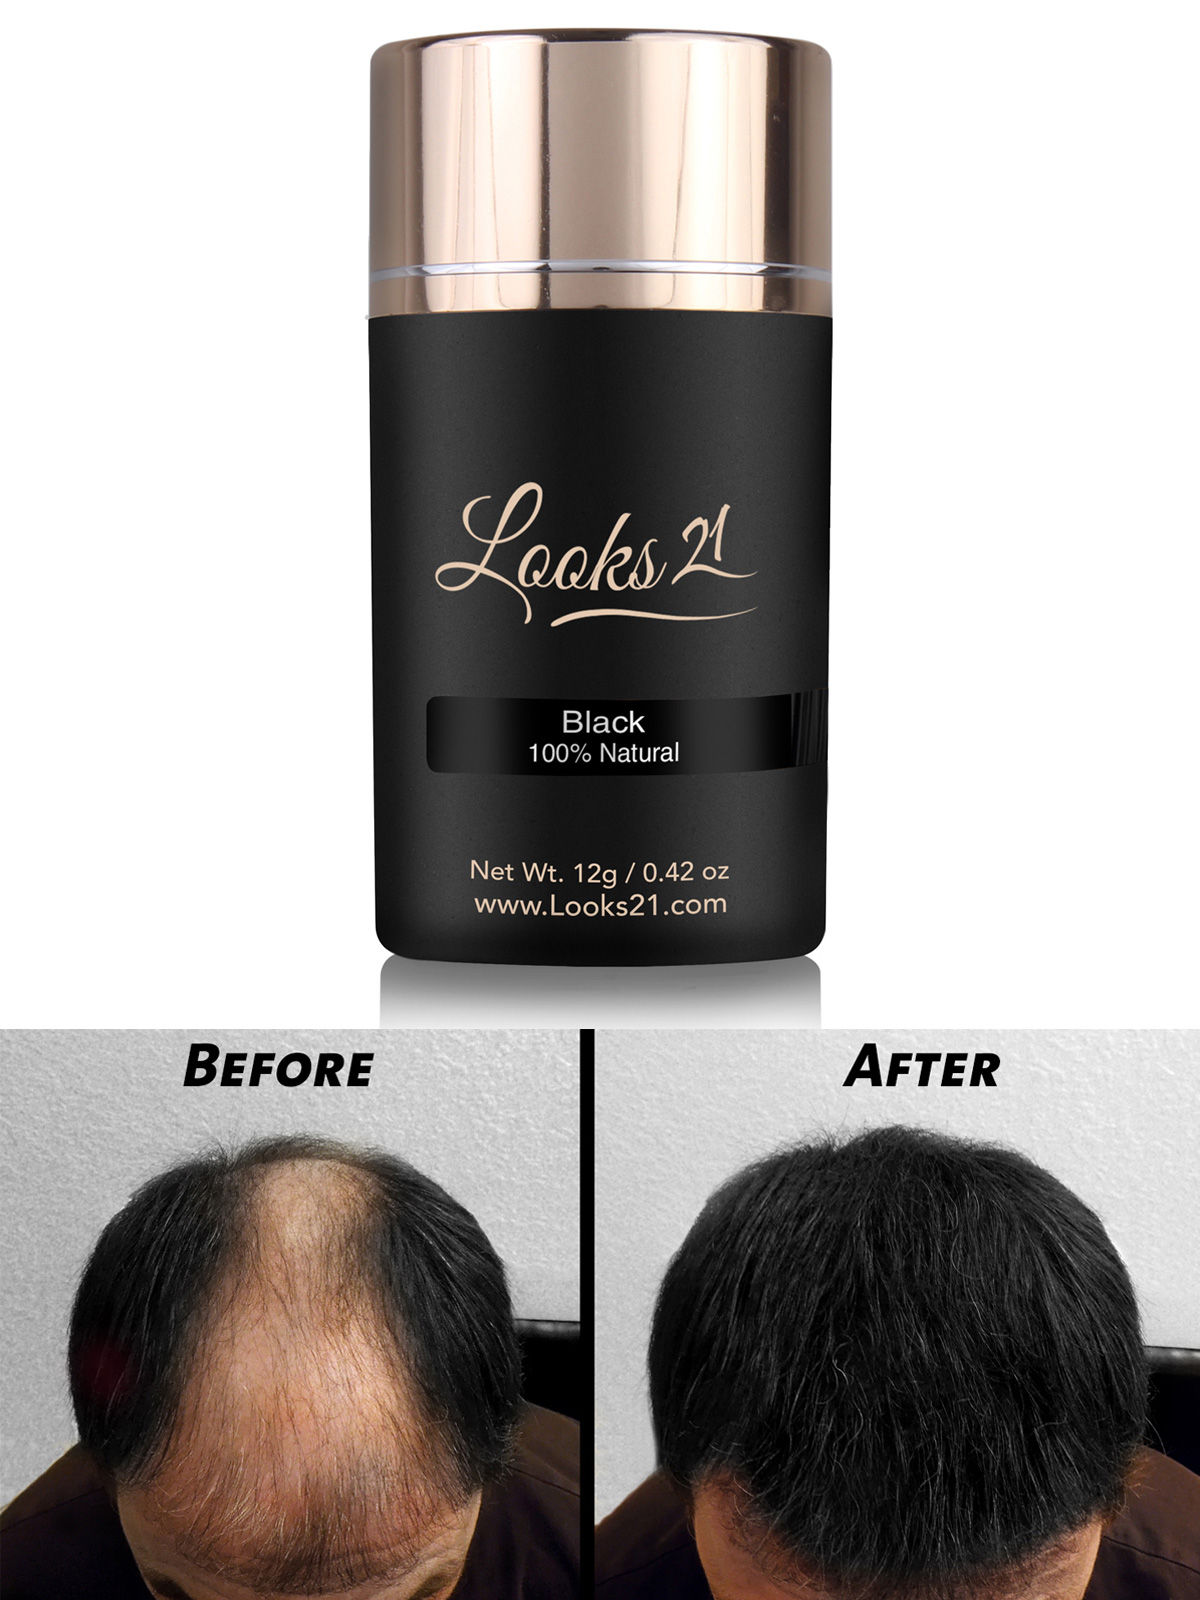 buy looks21 hair loss concealer online at best price in india on